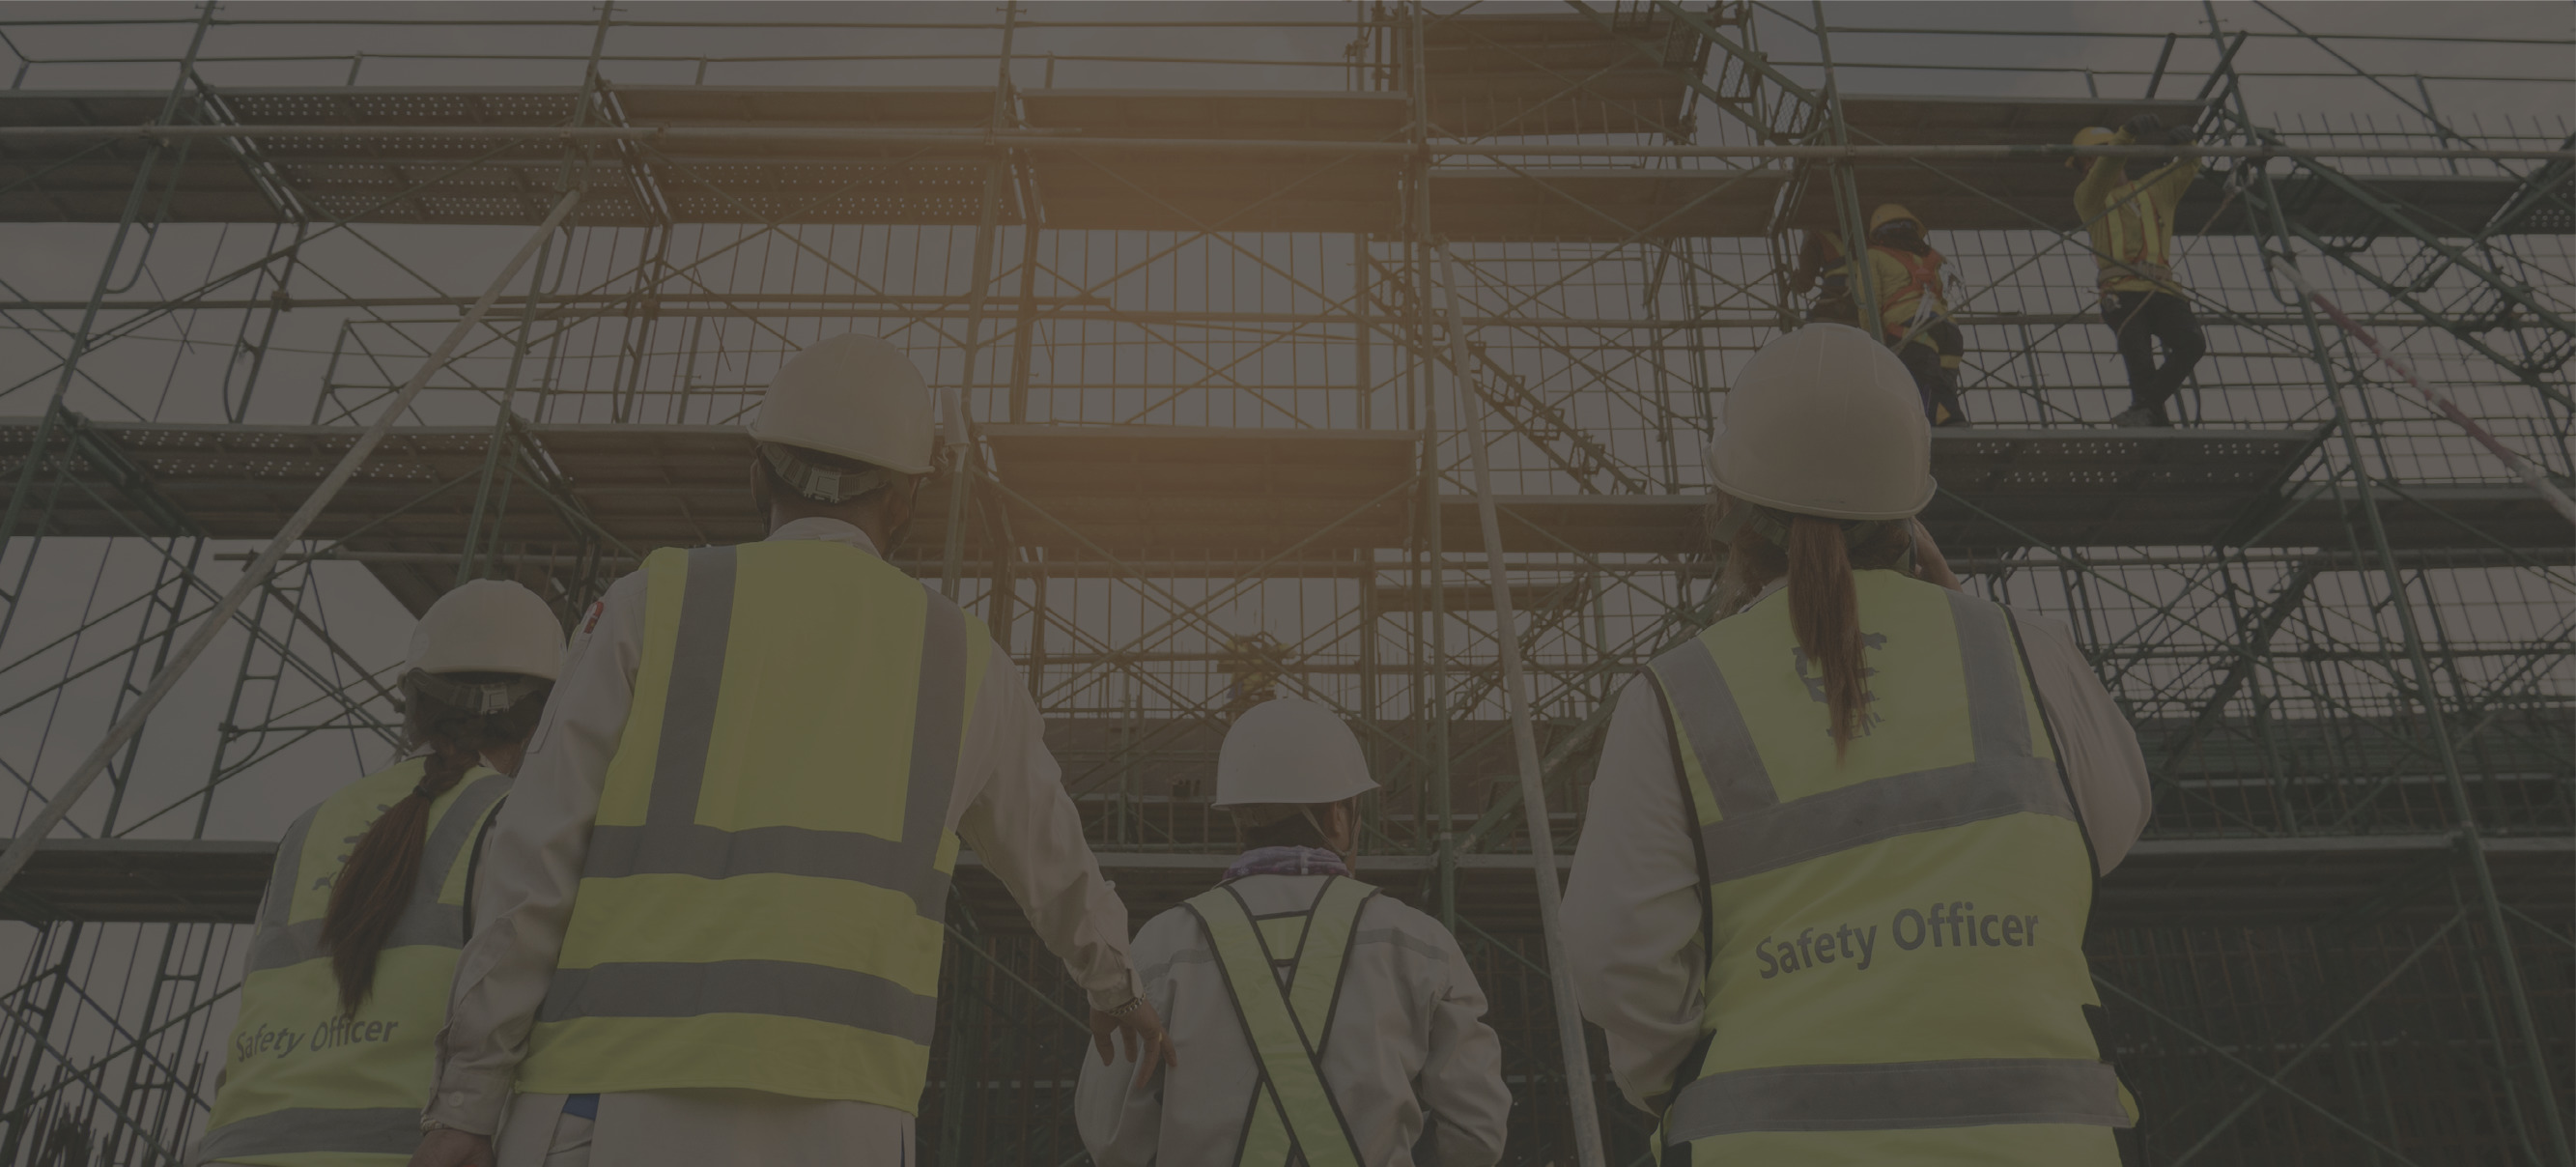 Darkened image of a group of people at a construction site with safety vests